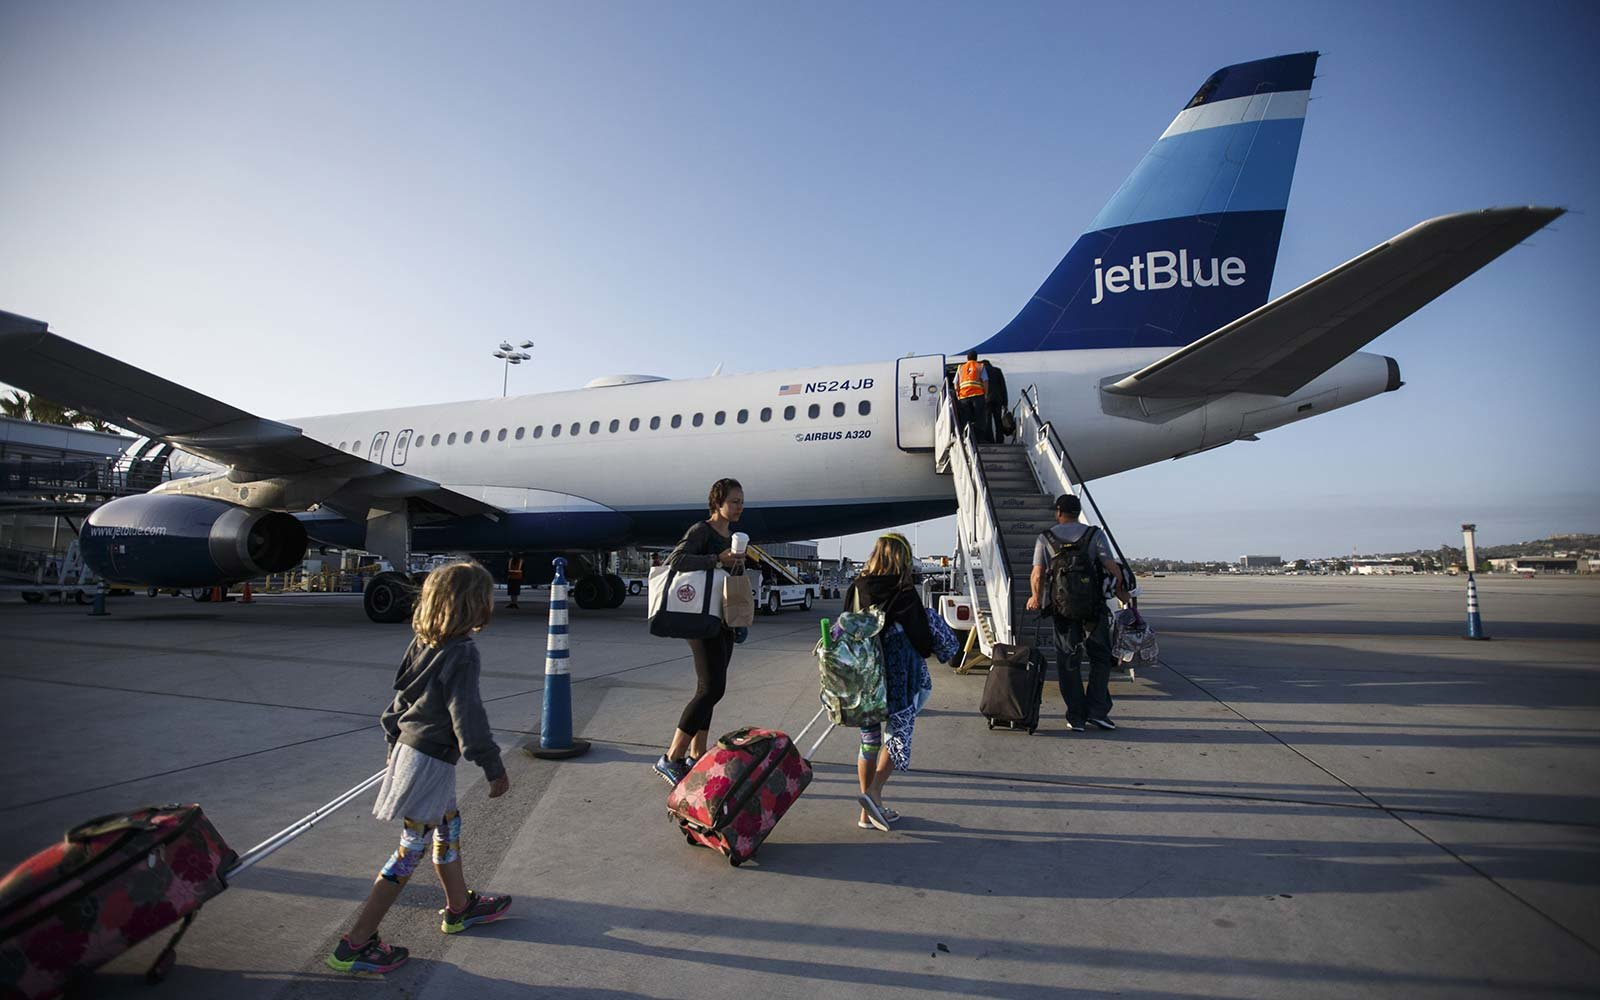 JetBlue Airbus A320 Airplane